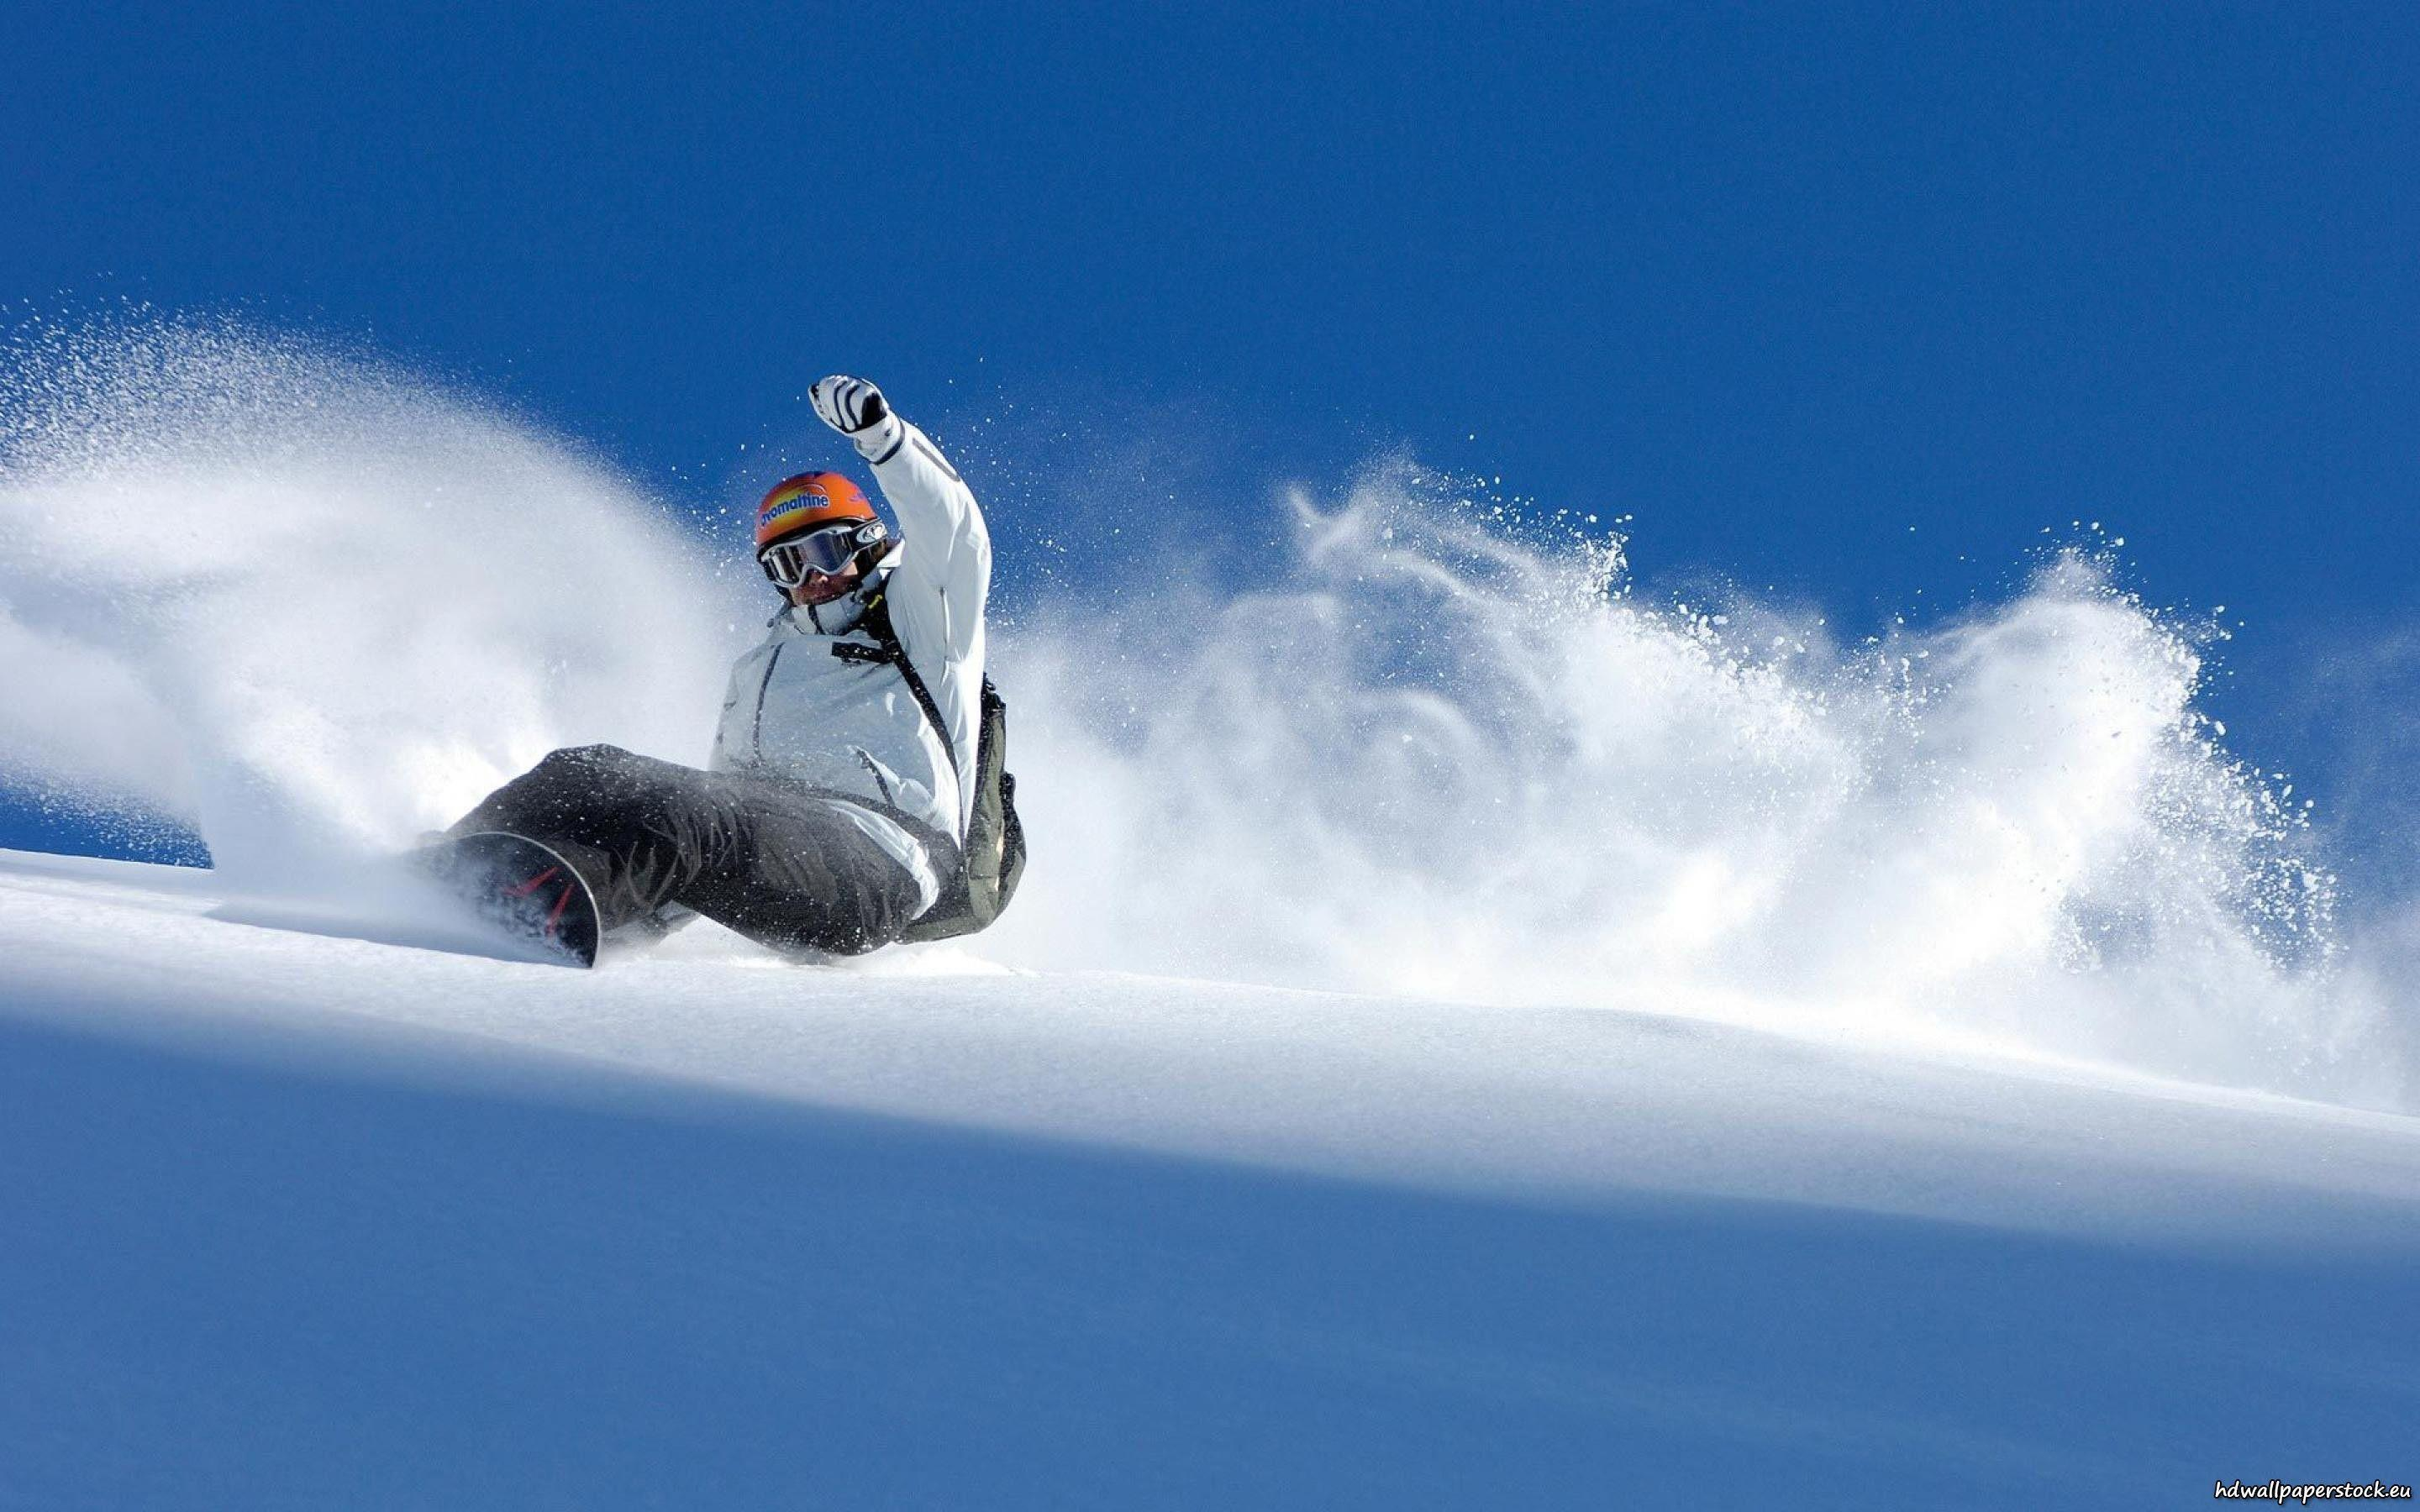 Snowboard Wallpapers - Full HD wallpaper search